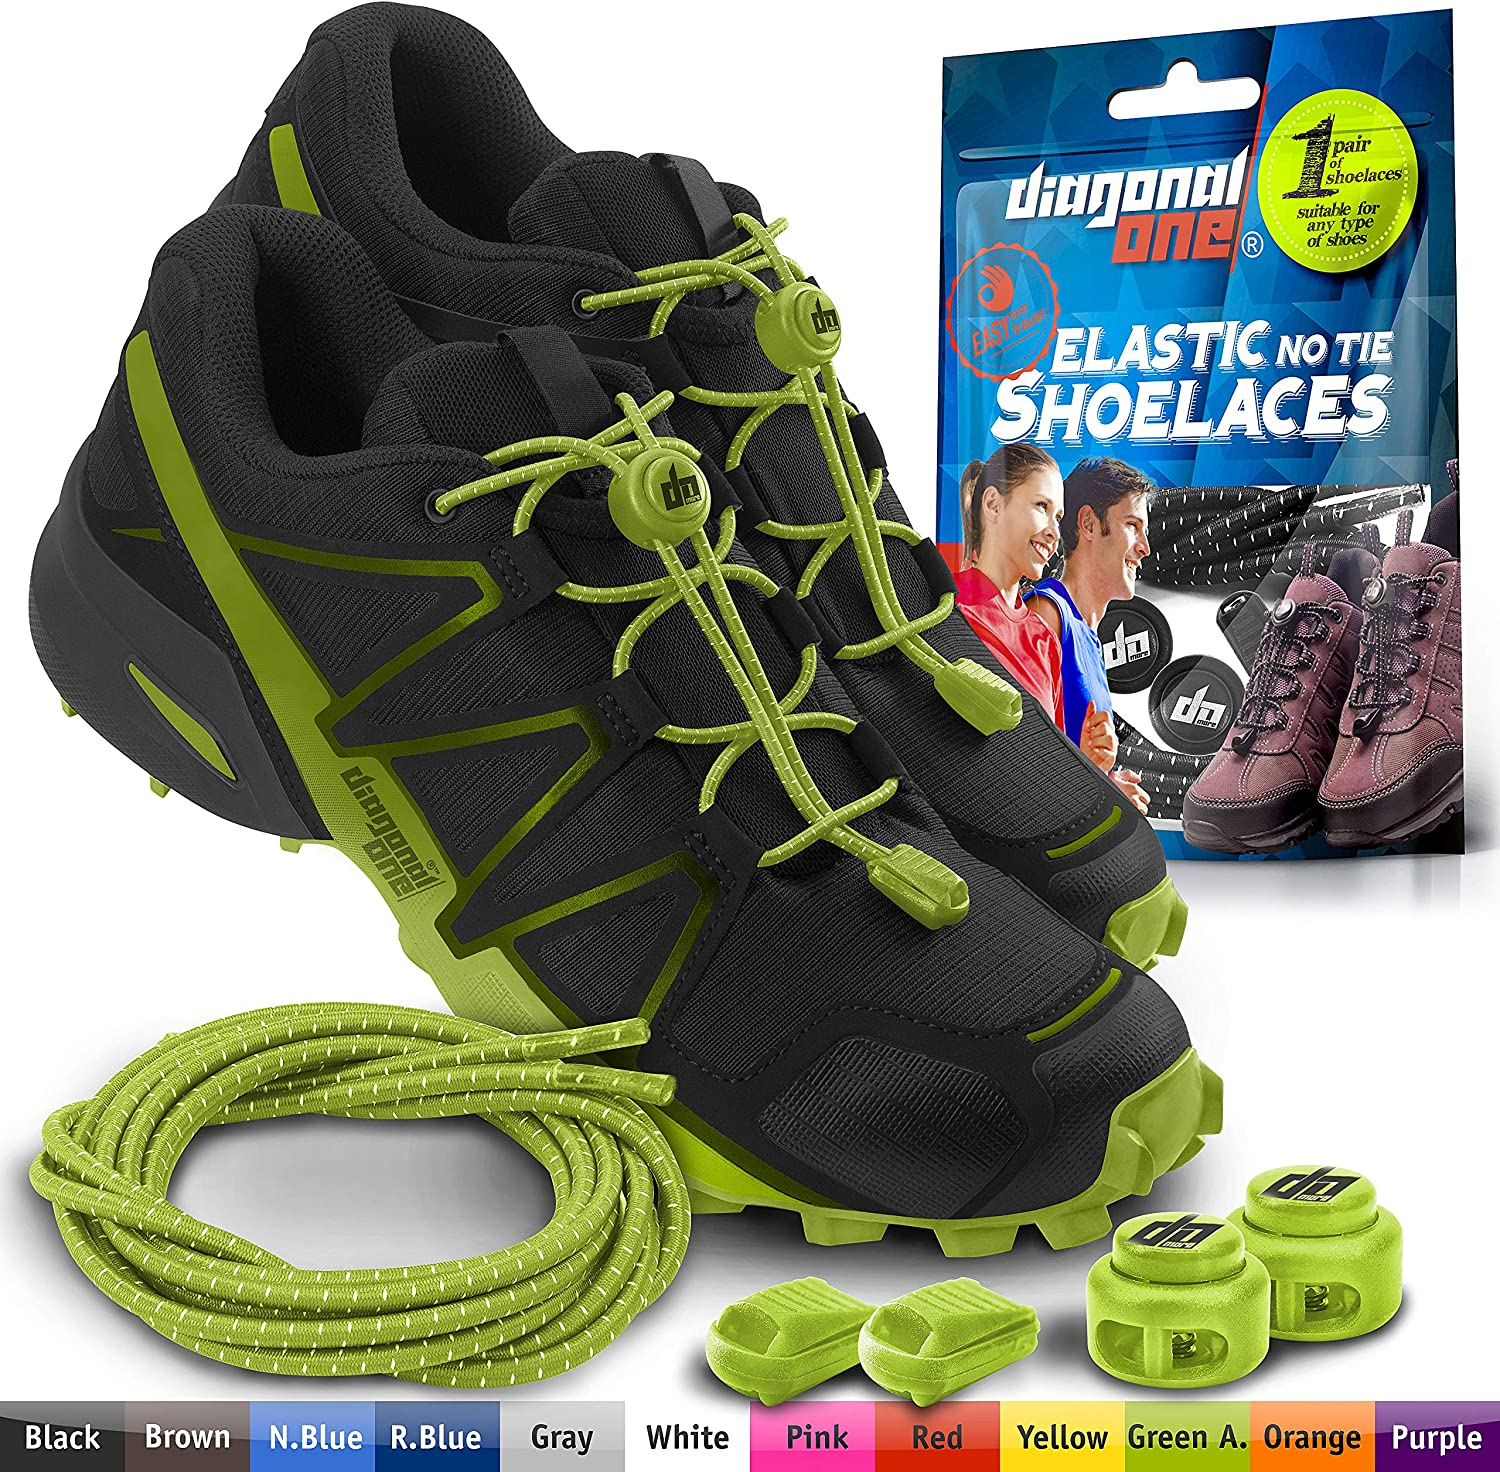 DIAGONAL ONE Elastic Shoe Laces for Men and Women, Compatible with Sneakers, Converse, Trainers, and Casual Footwear – No Tie Shoelaces Suitable for Kids, Adults, Teenagers and Seniors